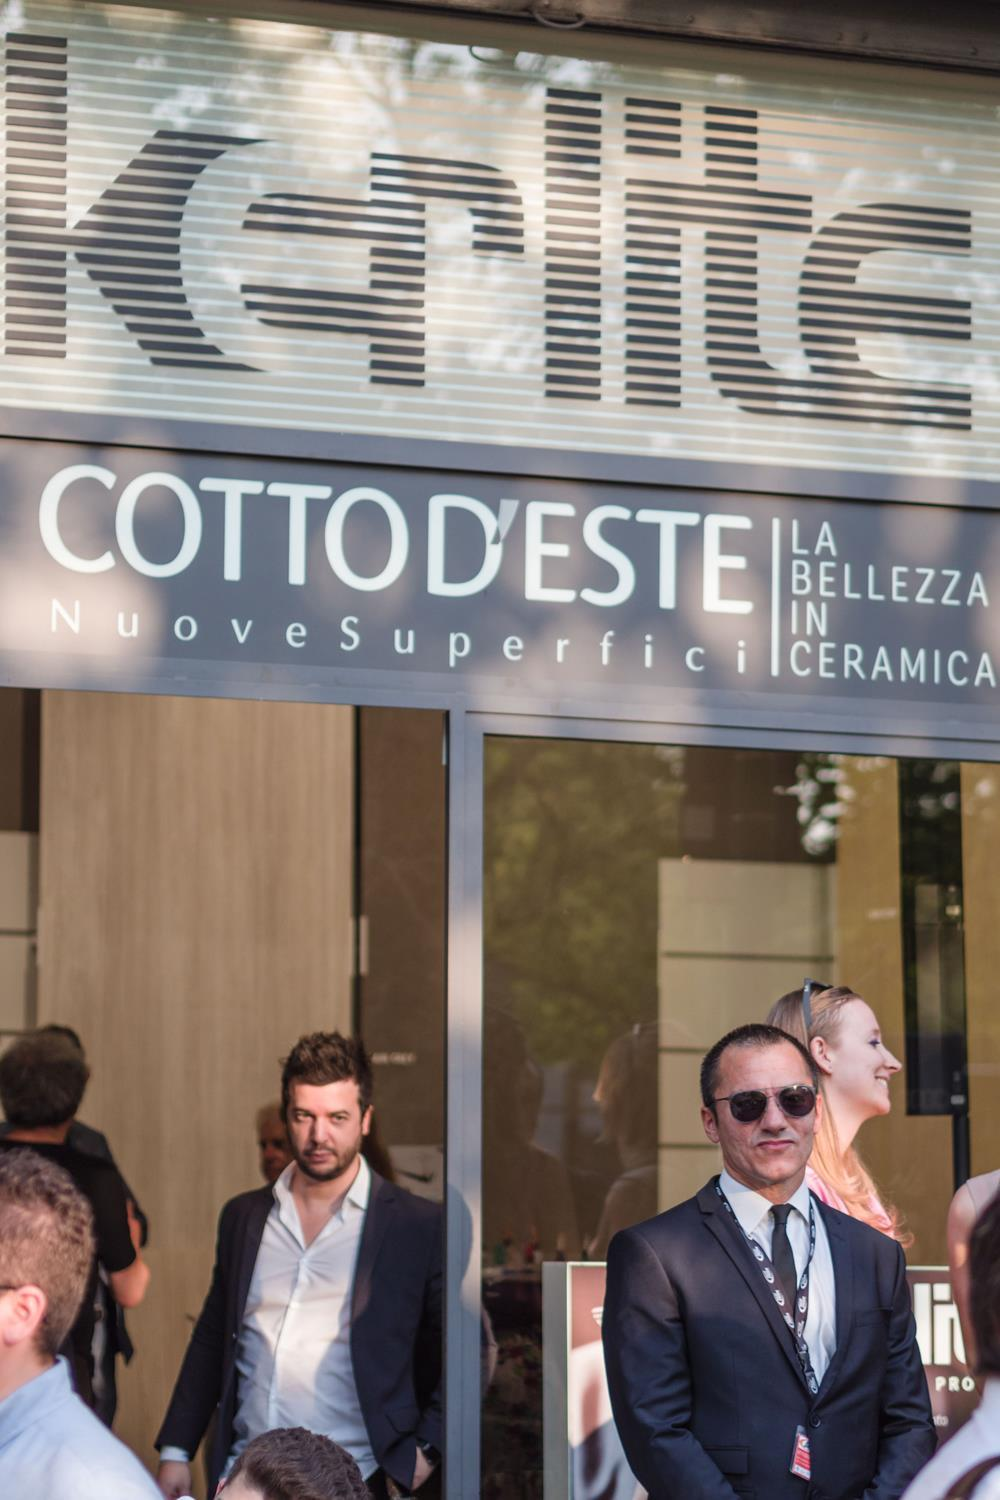 Cotto d'Este at the Fuorisalone - Night out: Photo 1